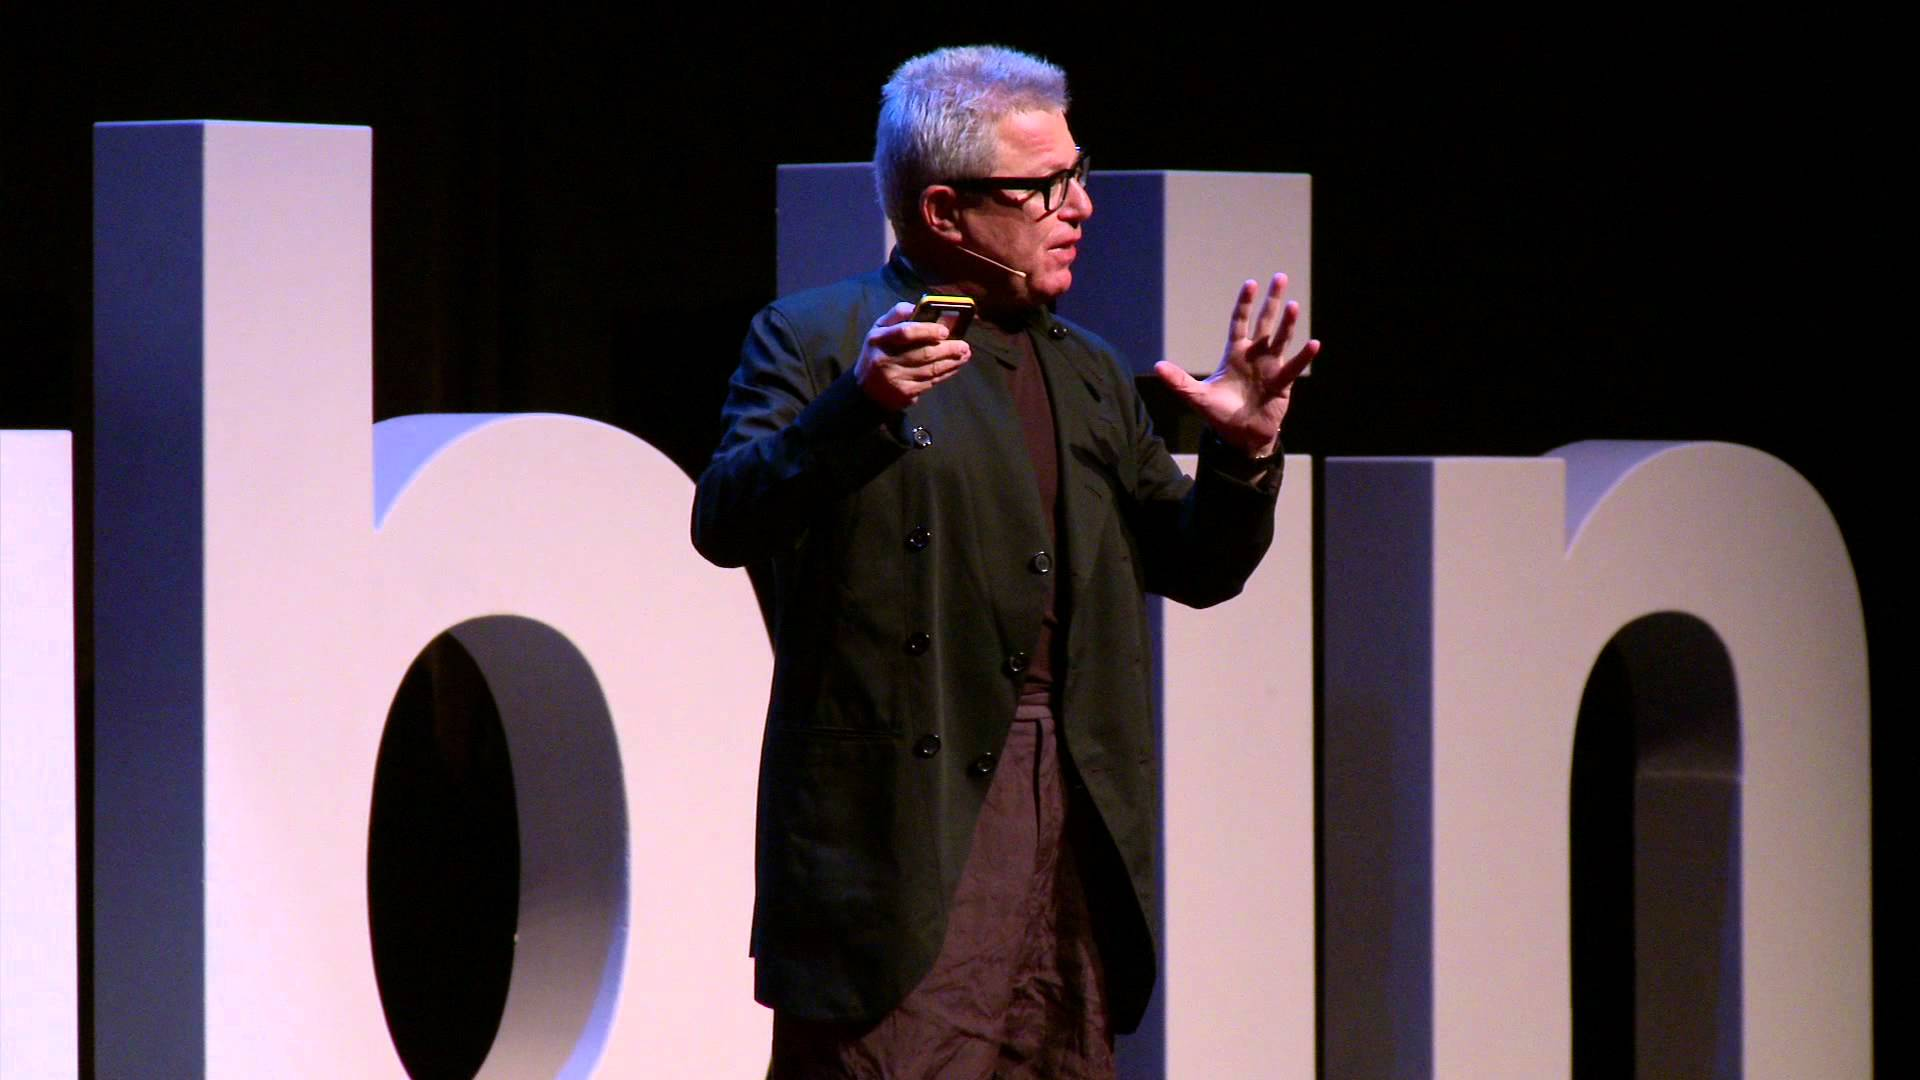 Daniel Libeskind giving a talk at tedx